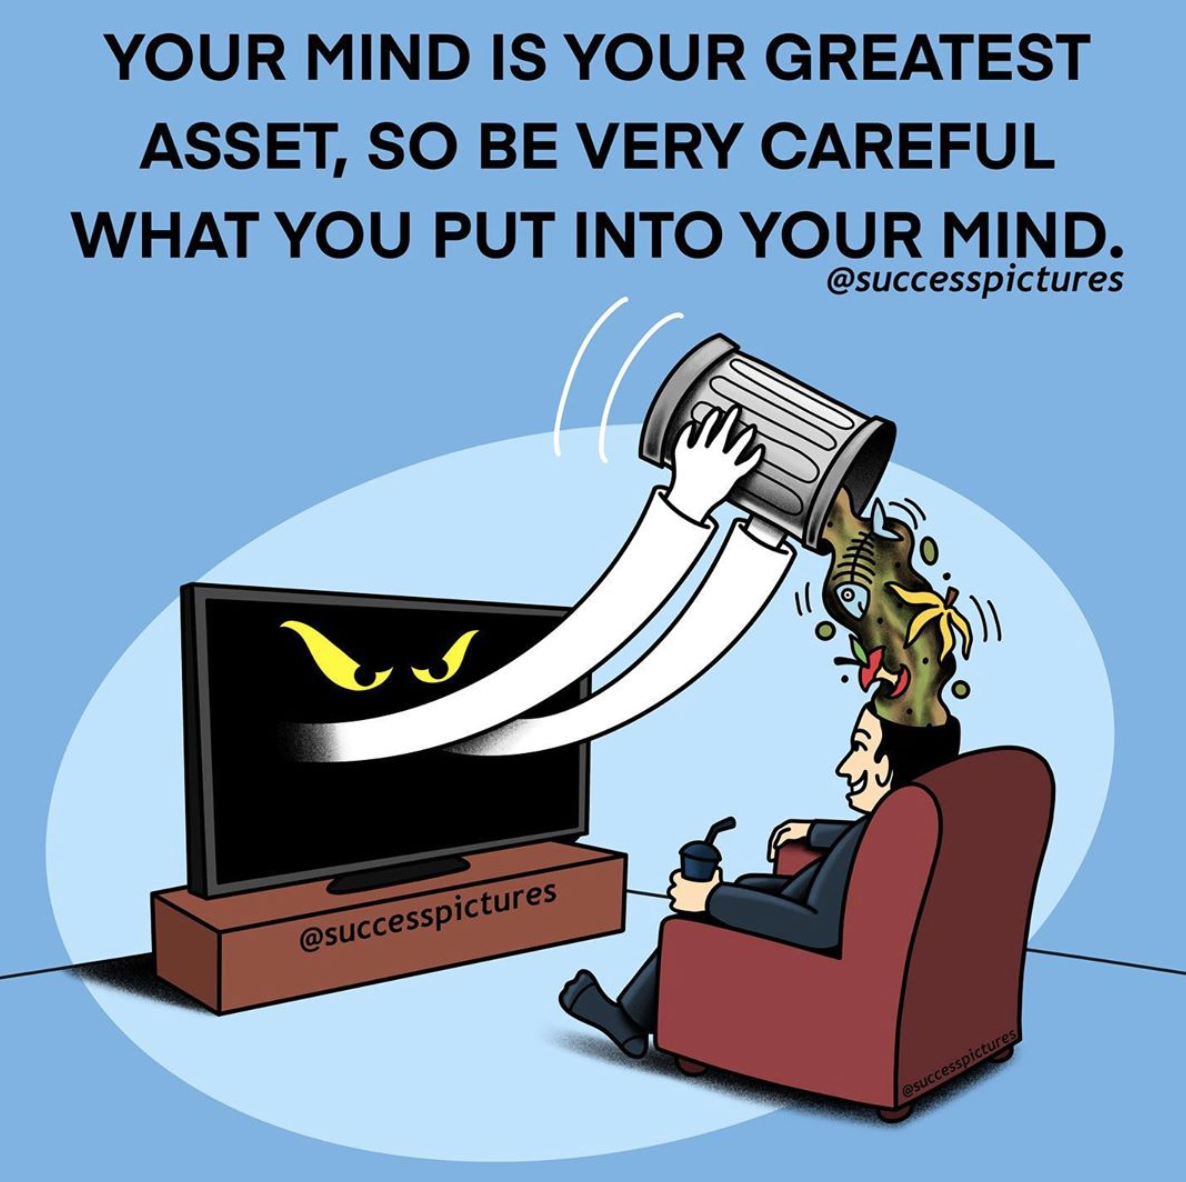 [Image] You need to take care of what you put into your mind because it is your greatest asset to succeed in life